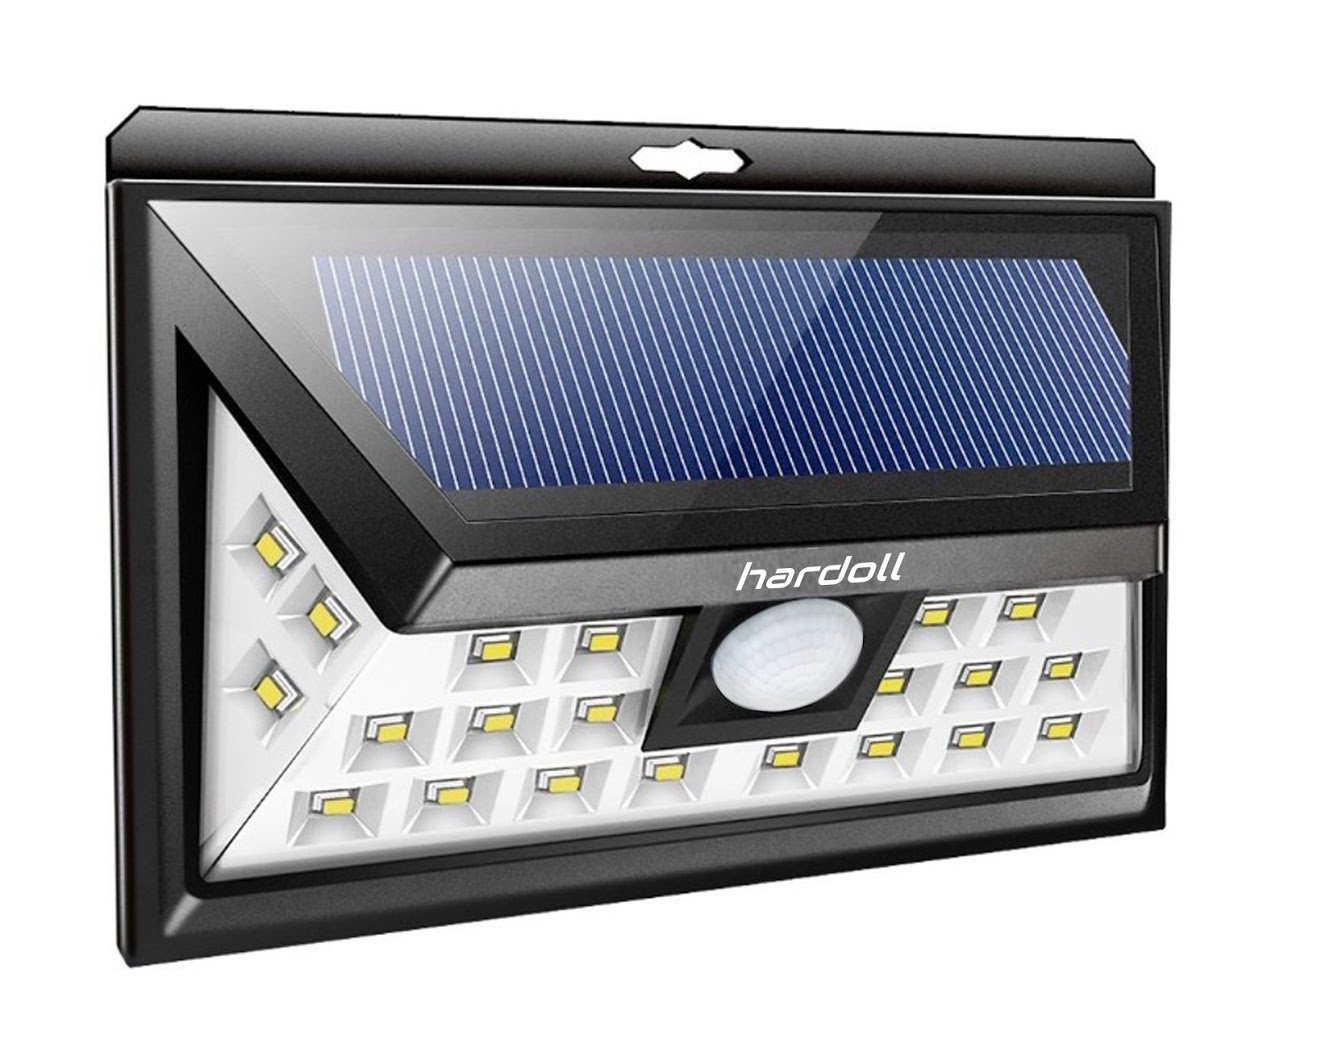 Hardoll 24 Led Solar Lights (Black)